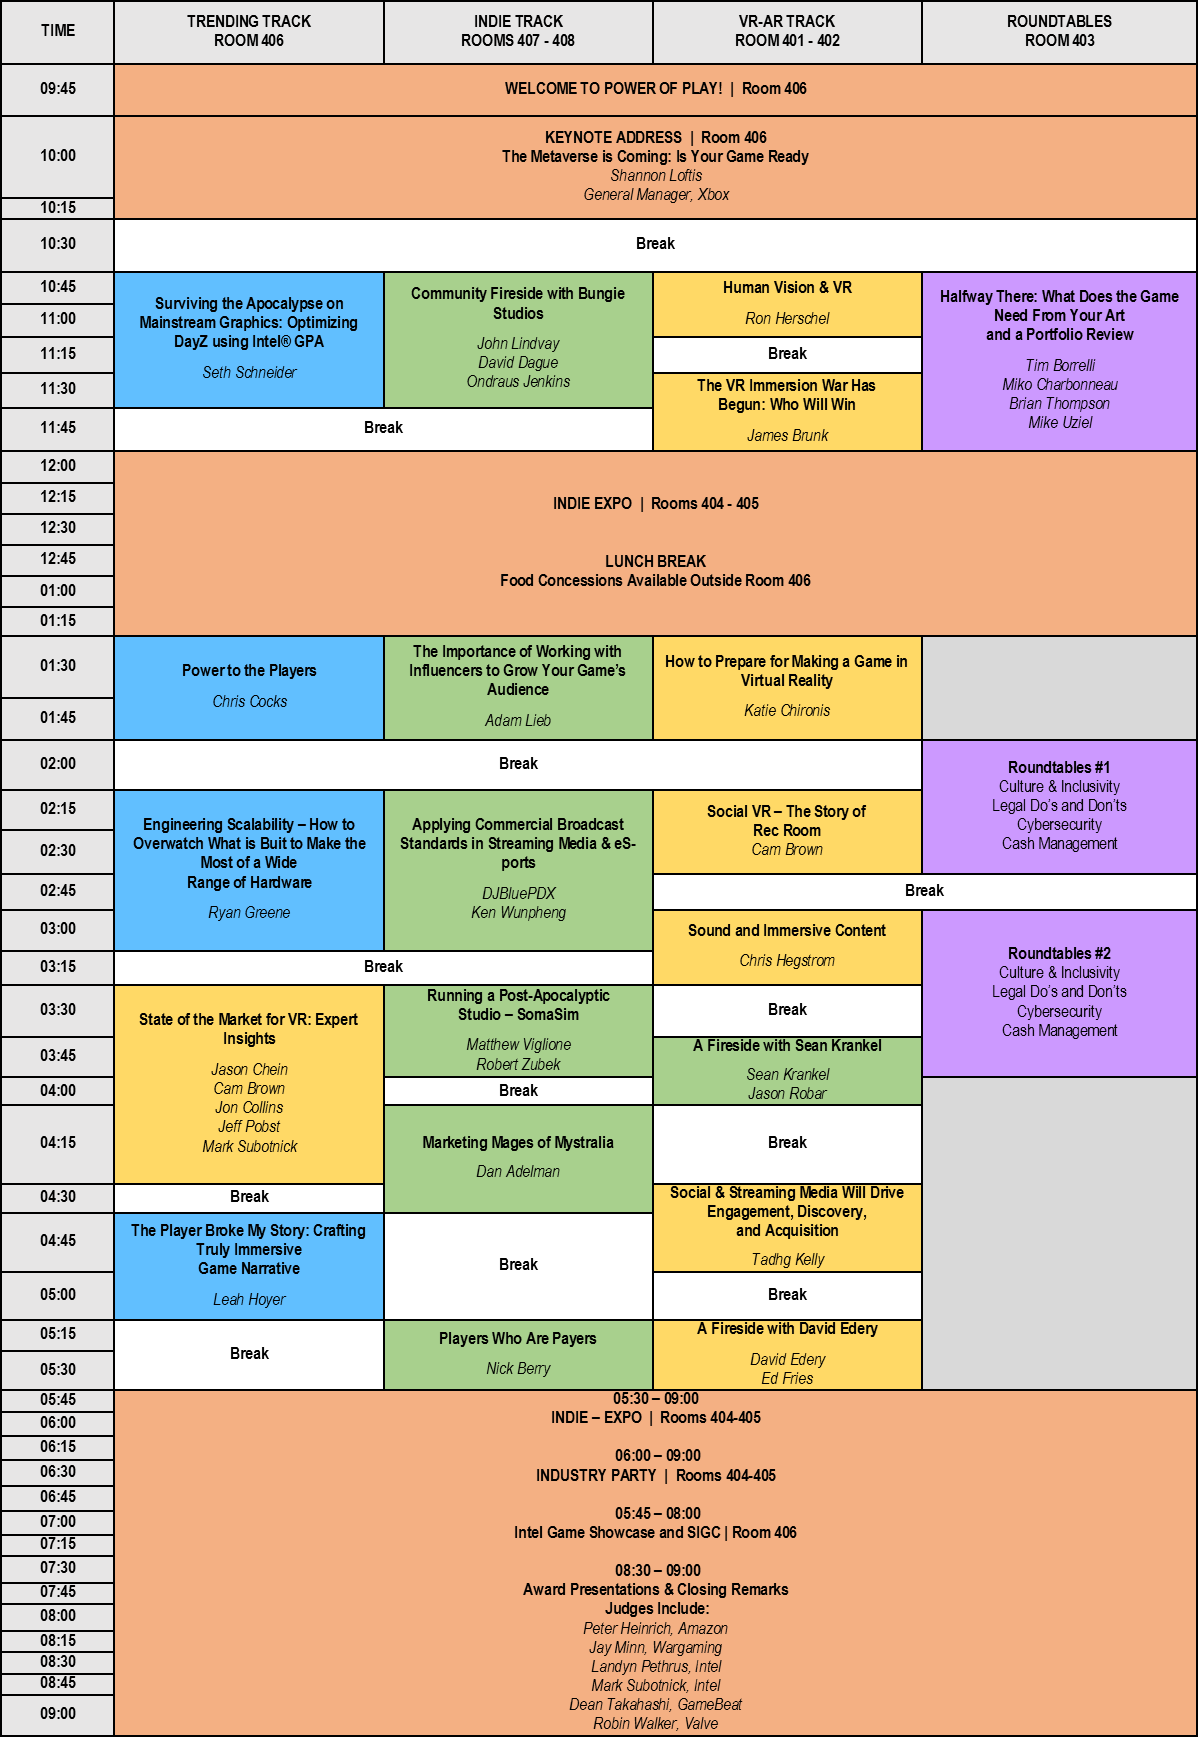 http://powerofplay.us/wp-content/uploads/2017/04/2017schedule-A-1198x1737.png